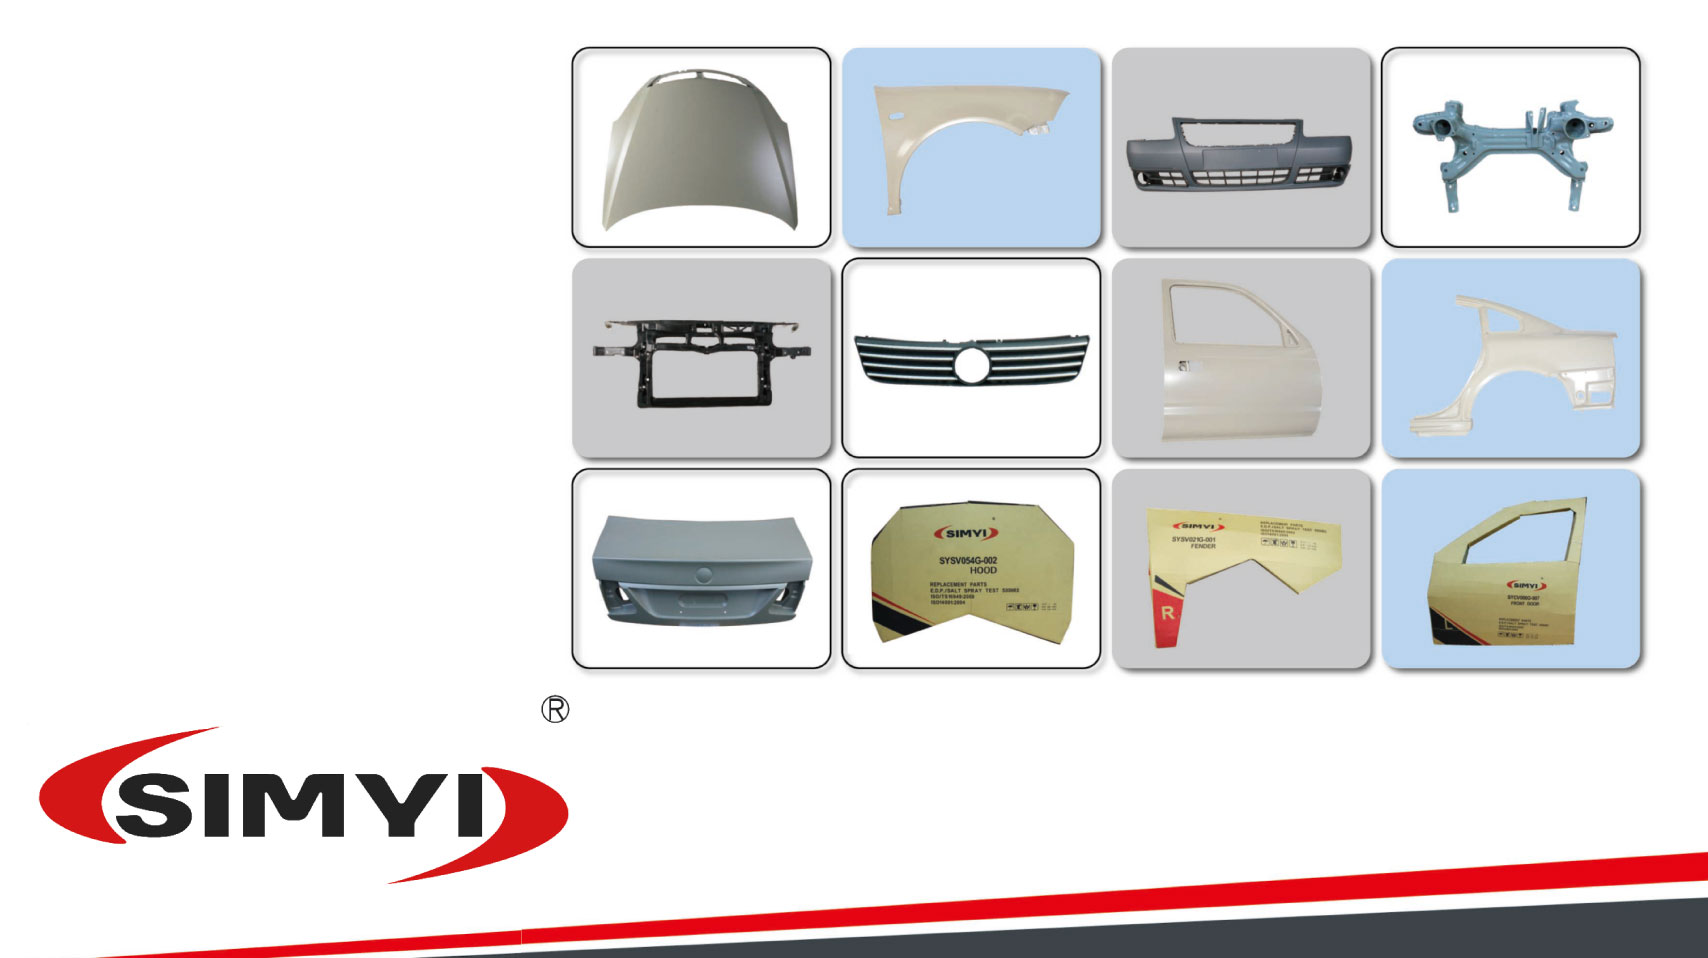 Hood, Fender, Grille, Support, Bumper, Door, Rear Trunk Lid for Body Parts made by Shanghai Simyi Auto Parts Industry Co., LTD. 上海鑫毅交通工業有限公司 – MatchSupplier.com